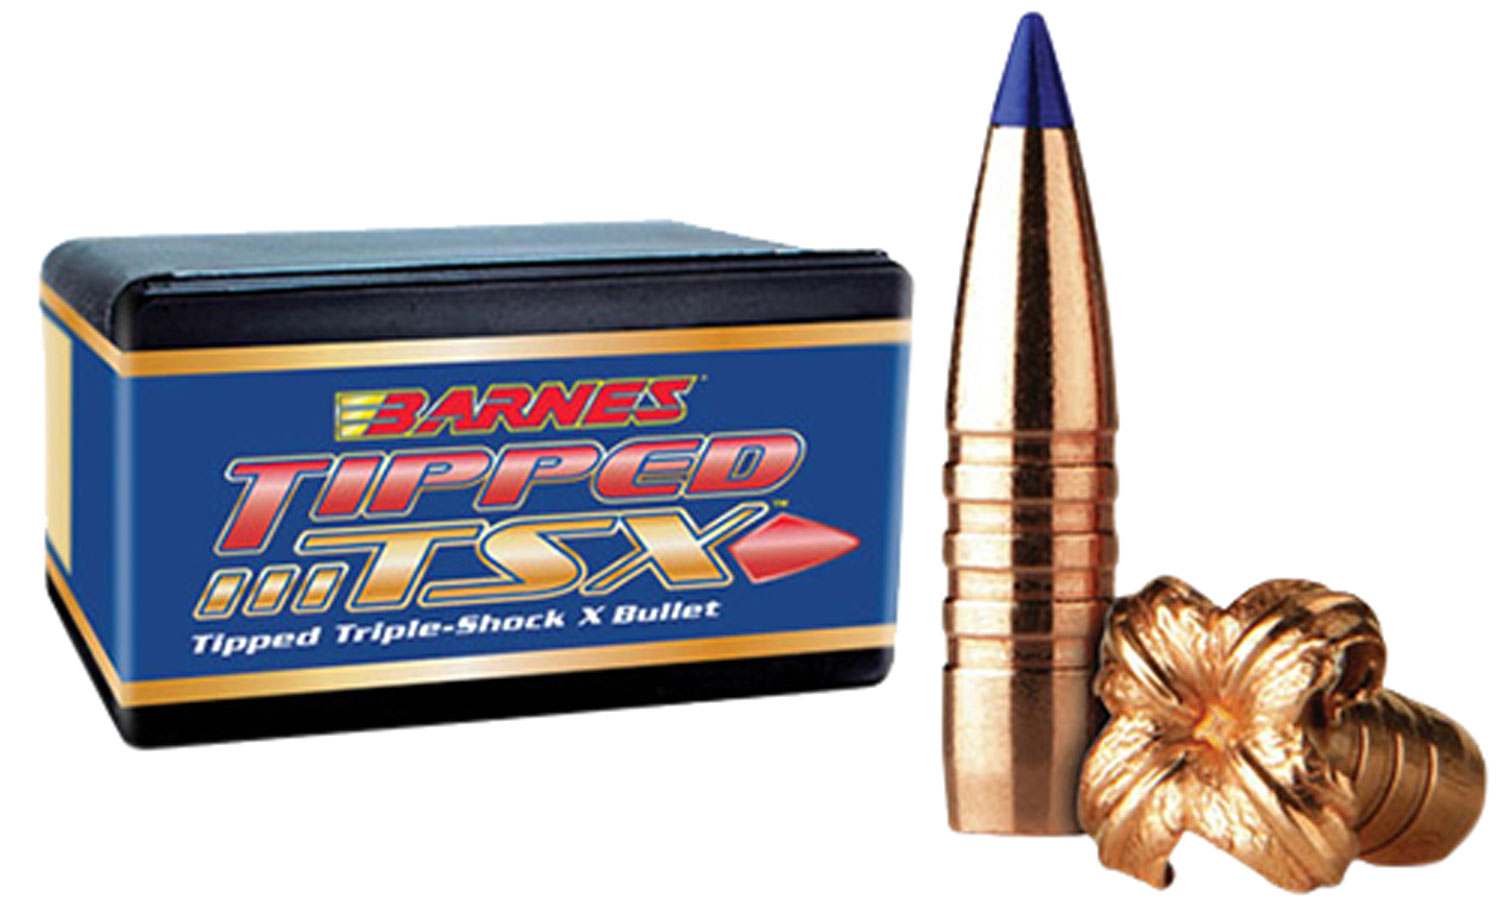 Barnes 26428 Triple-Shock X .264 100 GR 50 Per Box